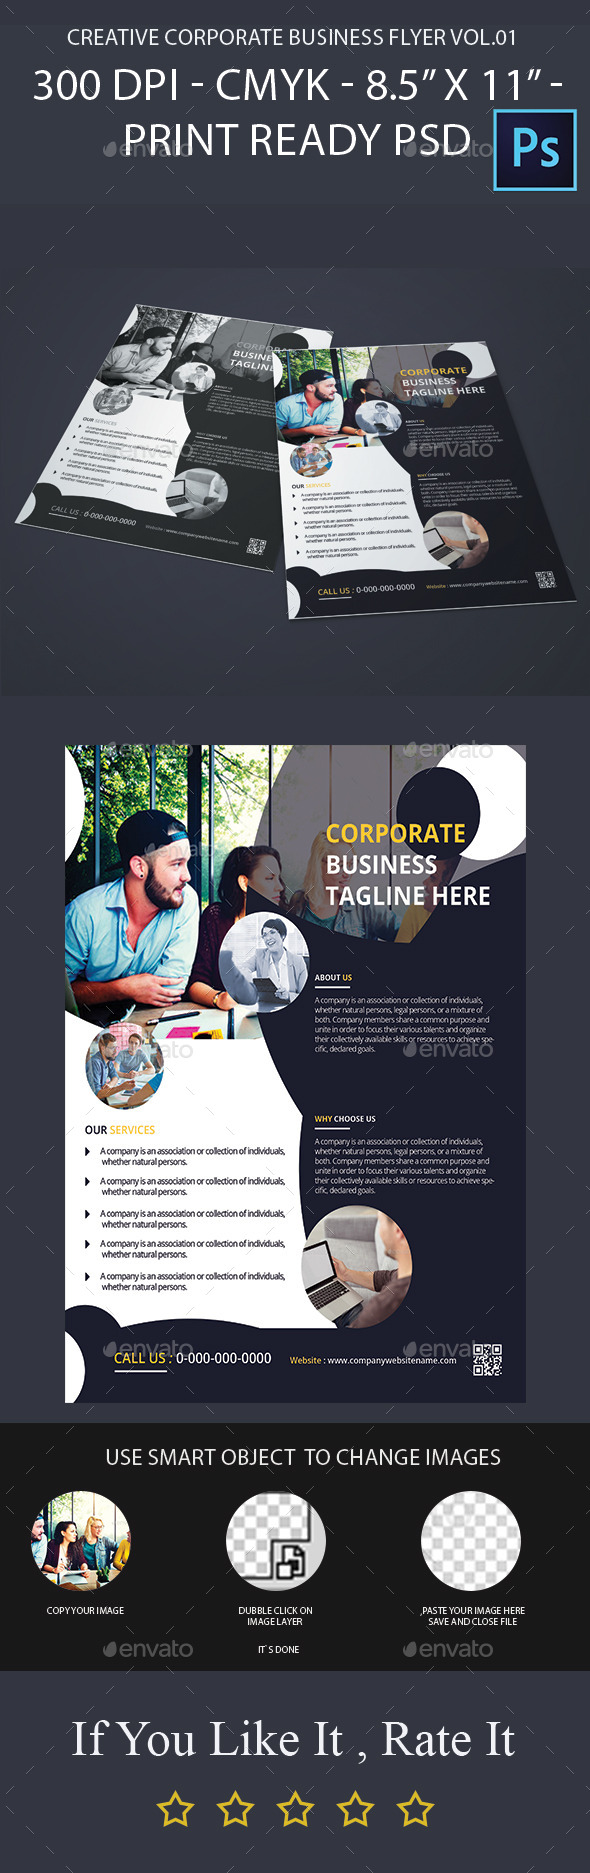 Creative Corporate Business Flyer Vol.02 - Corporate Flyers